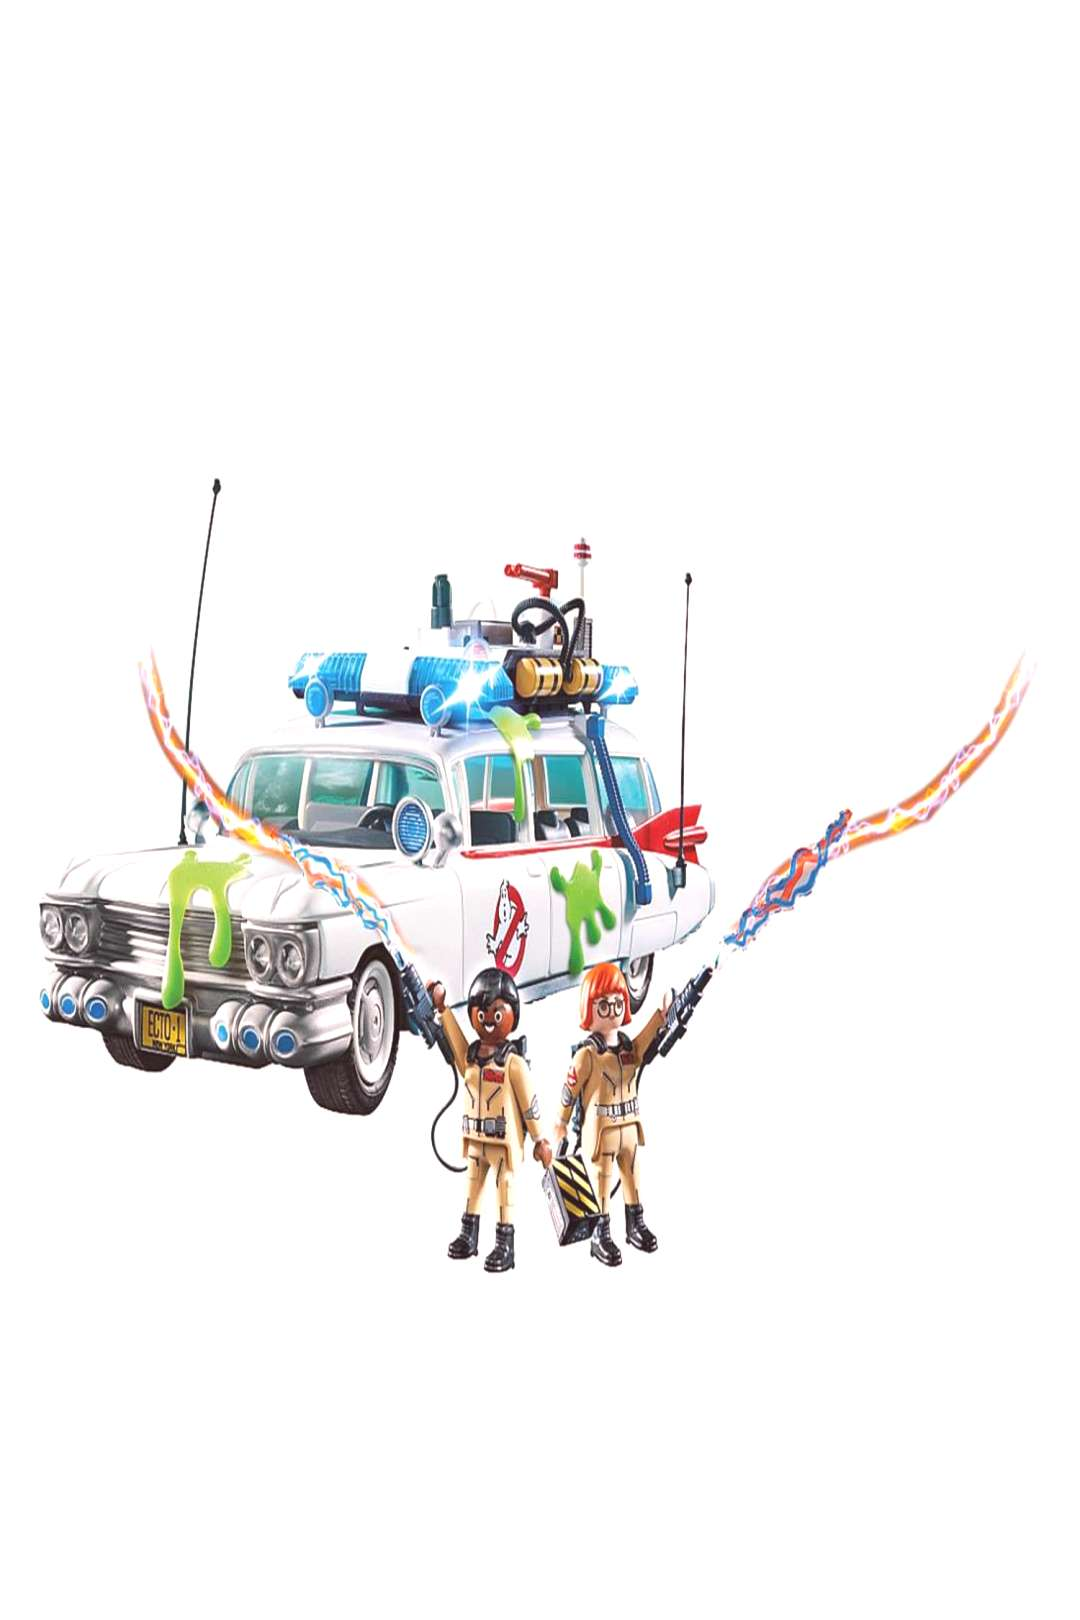 Playmobil Ghostbusters Ecto-1 Playset - 9220